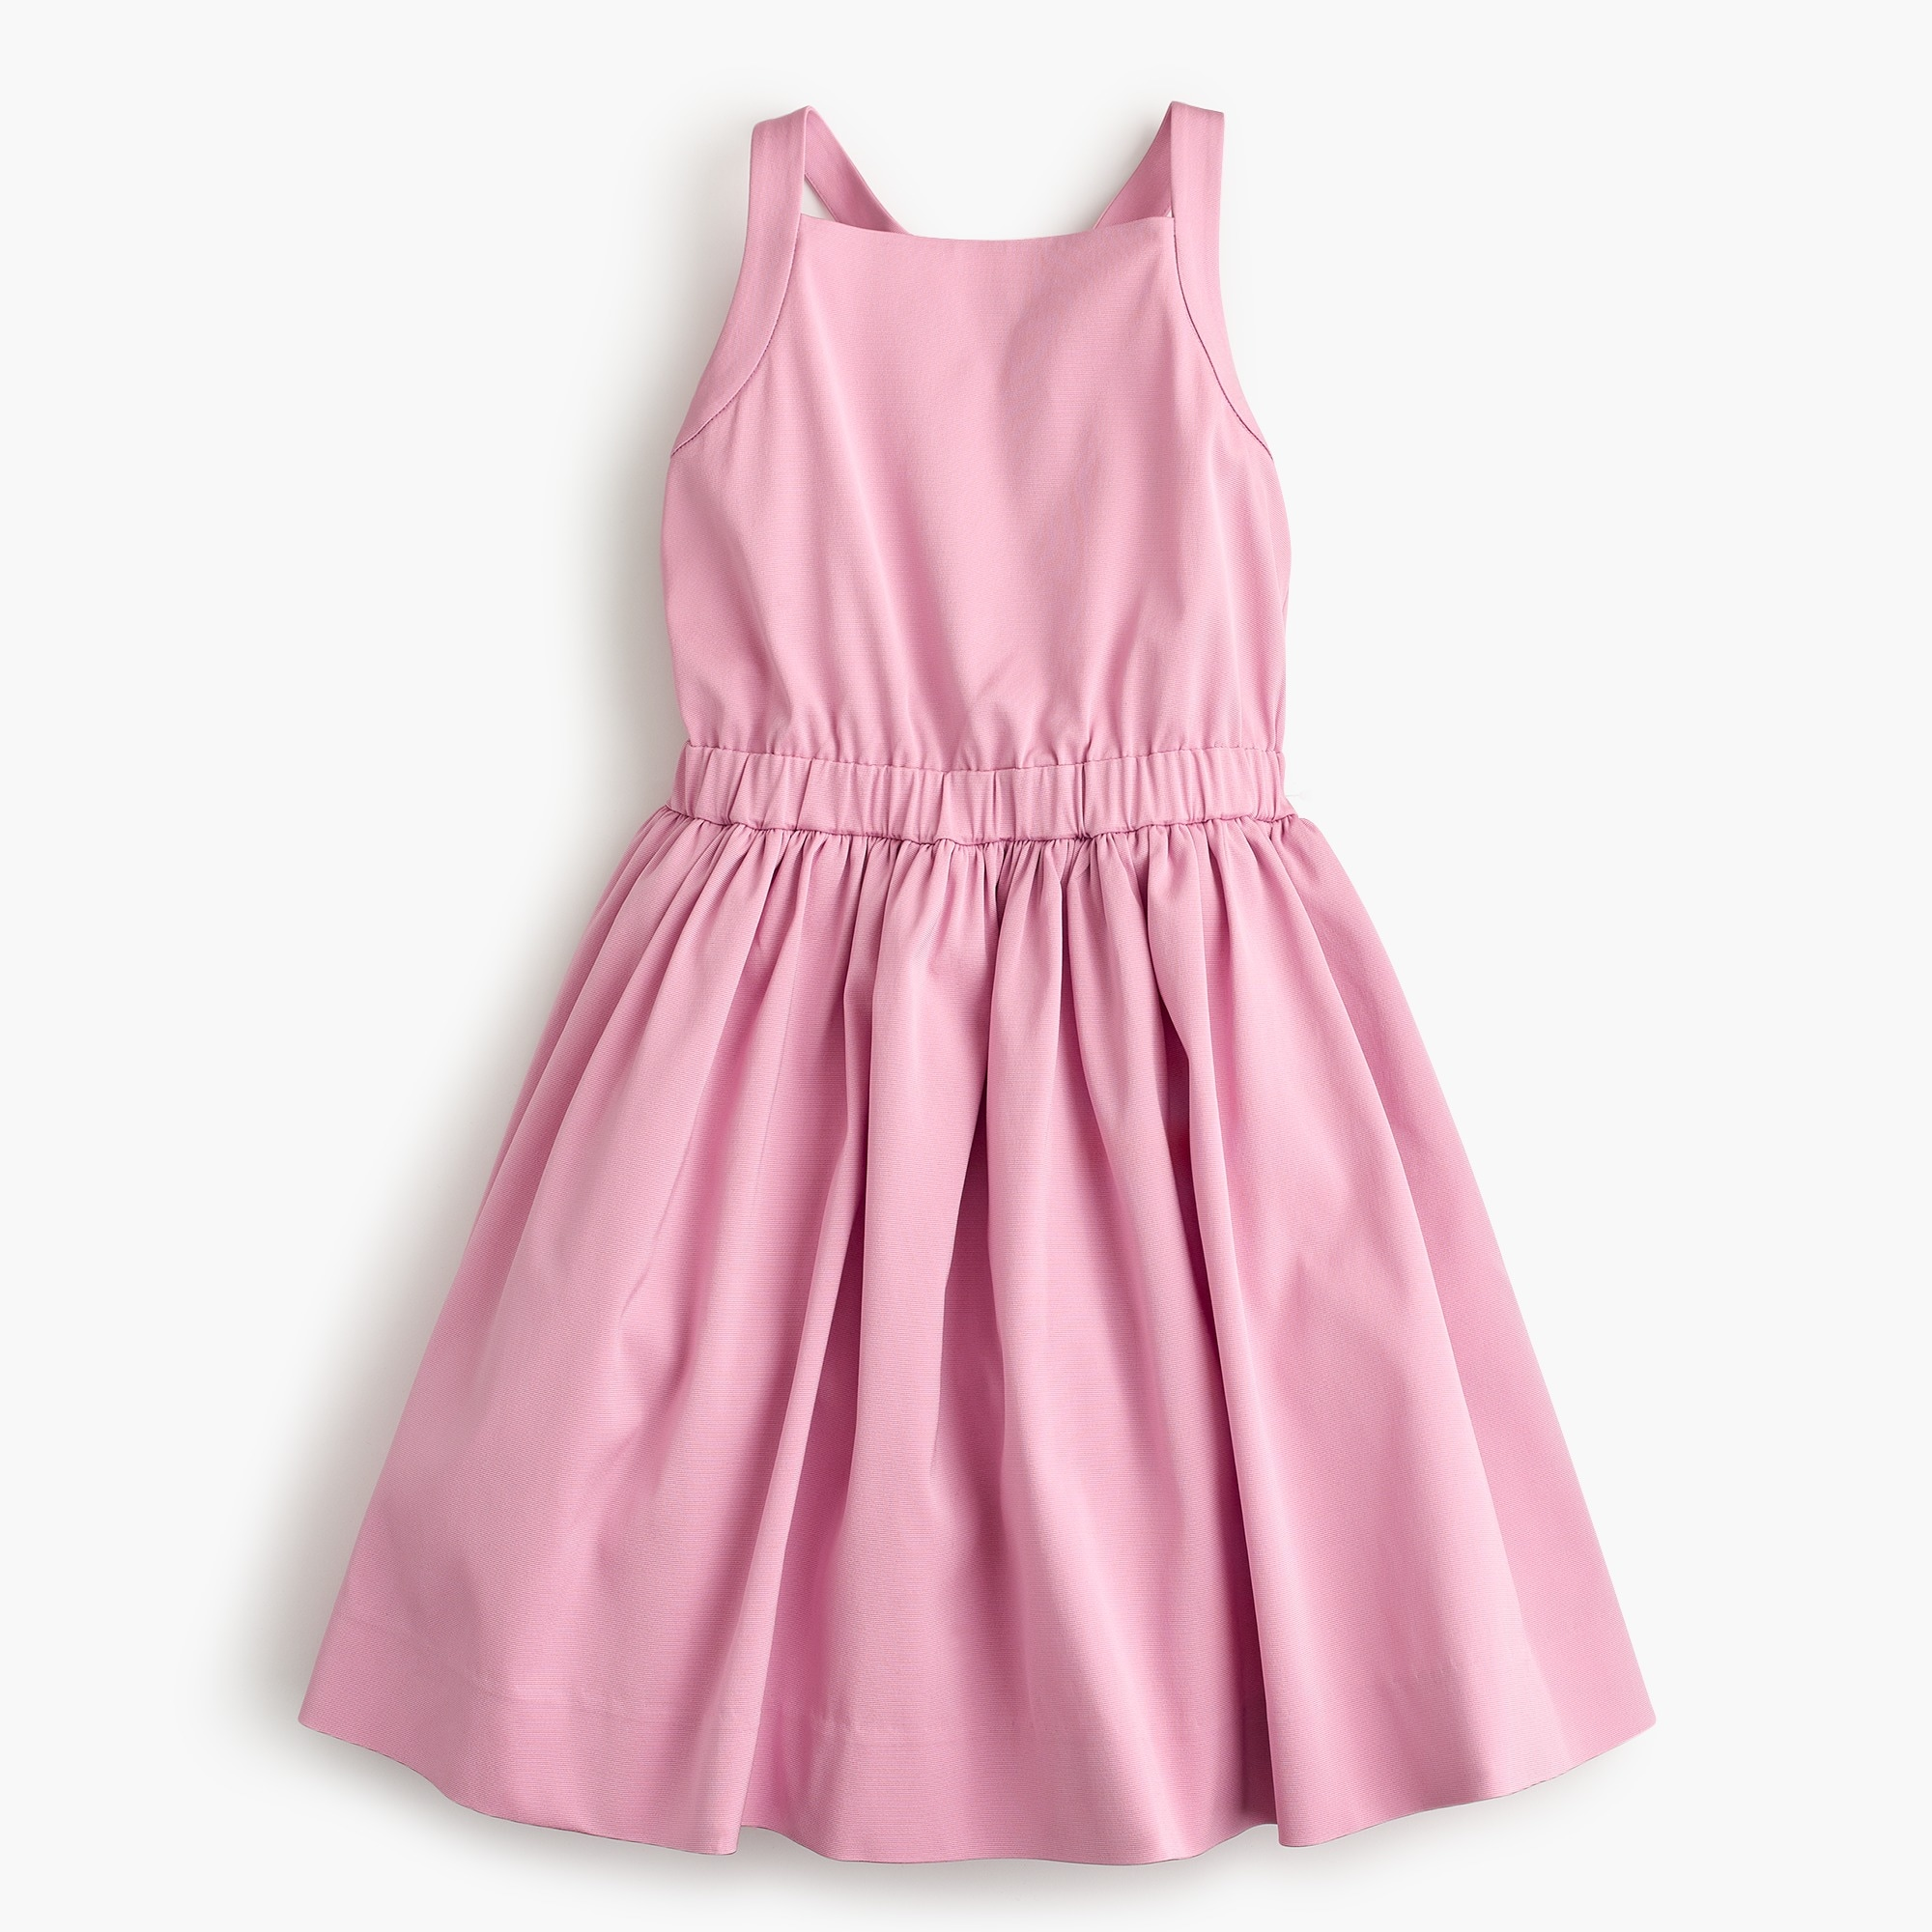 Girls' bow-back dress in stretch faille